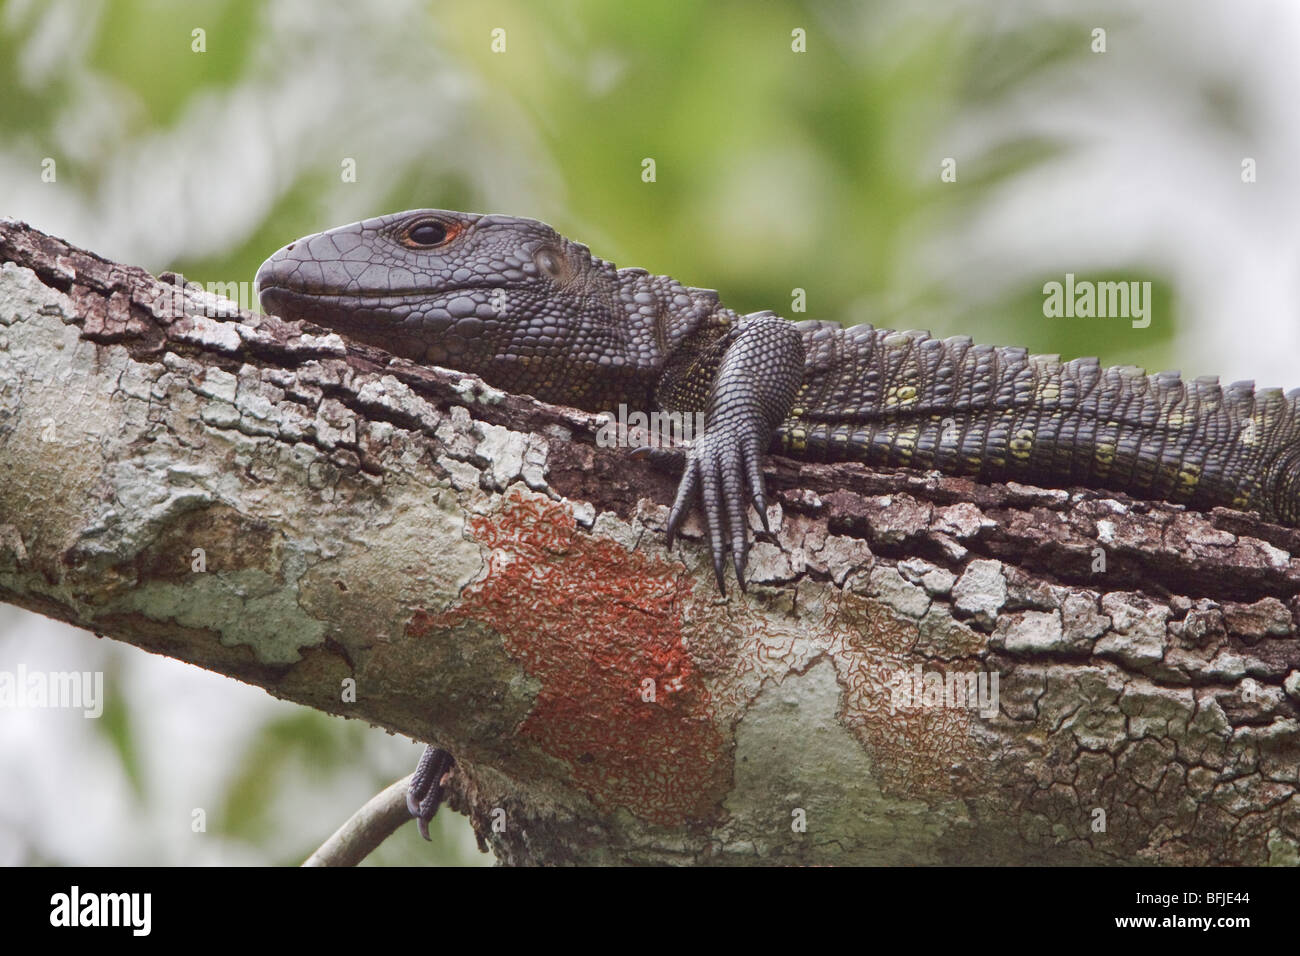 A large lizard perched on a branch sunning itself along a jungle stream in Amazonian Ecuador. - Stock Image